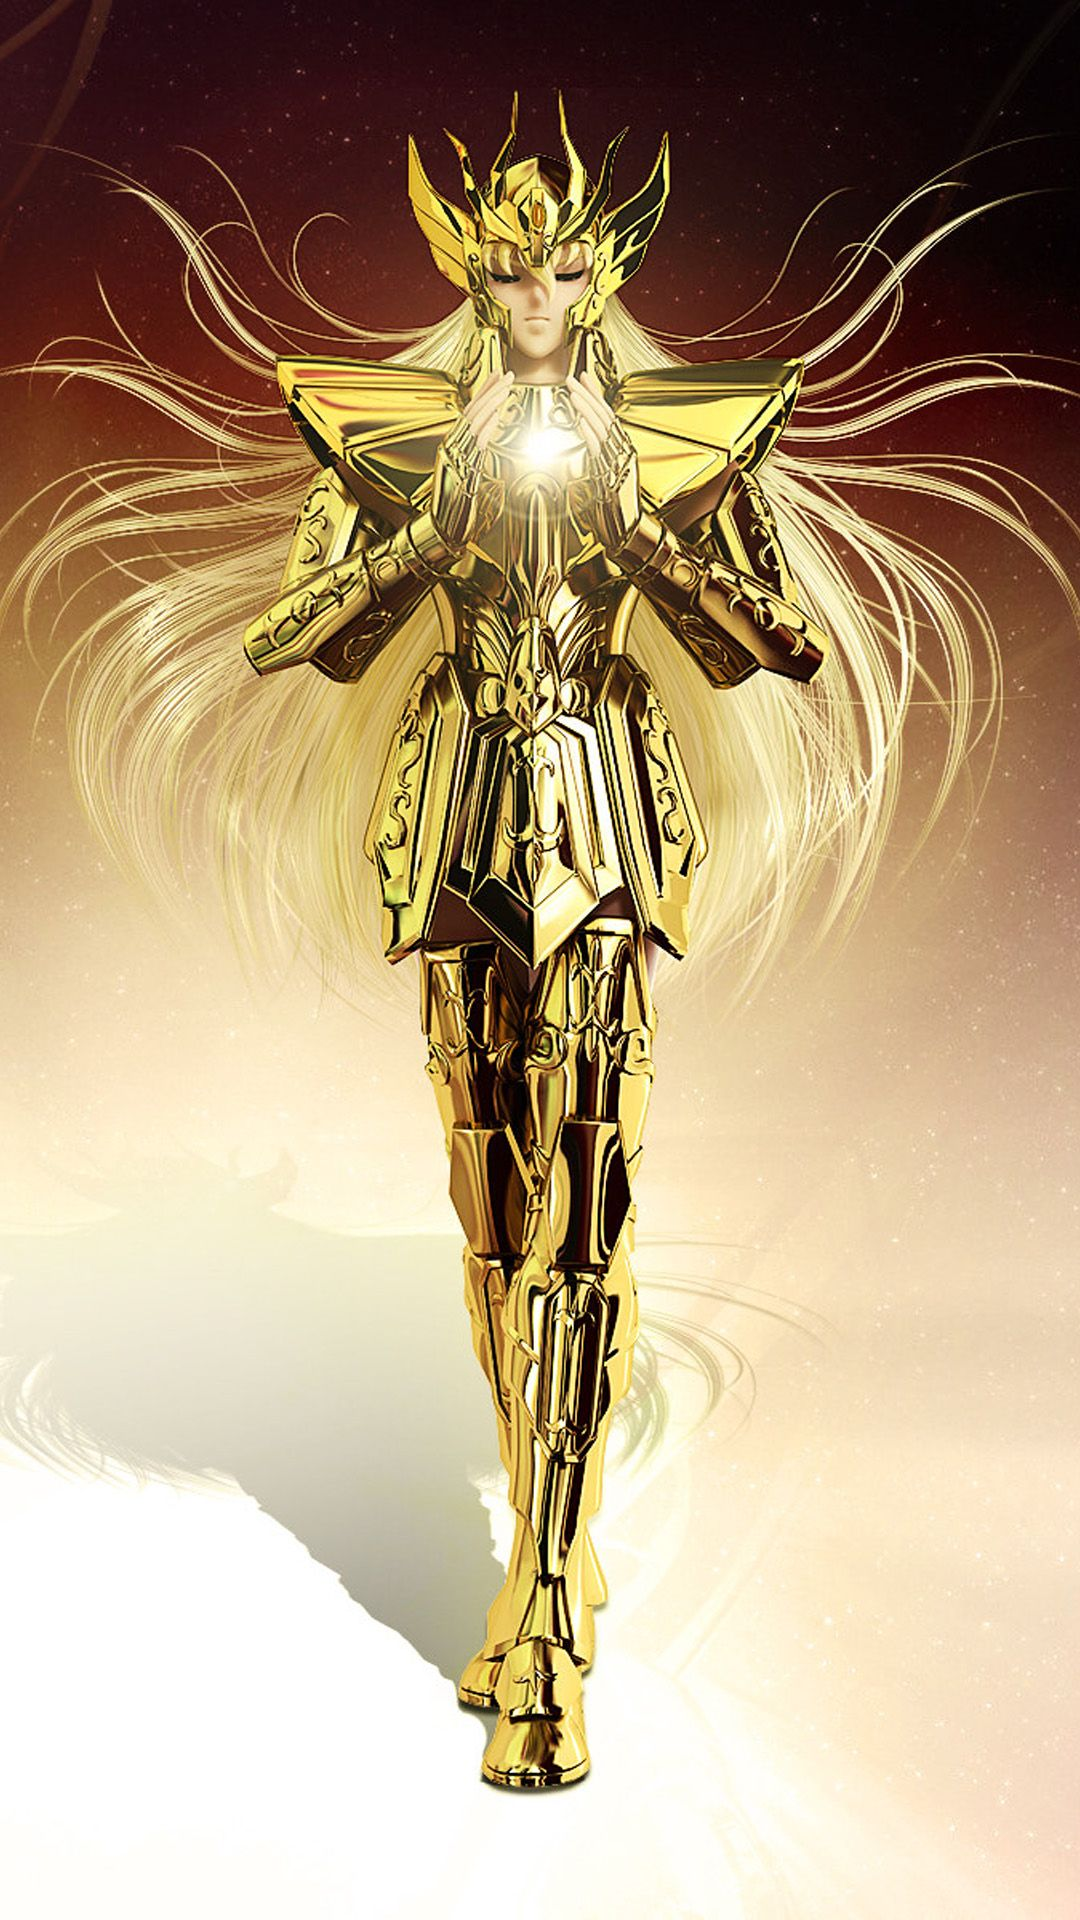 Saint Seiya Anime Poster IPhone 6 Plus Wallpaper